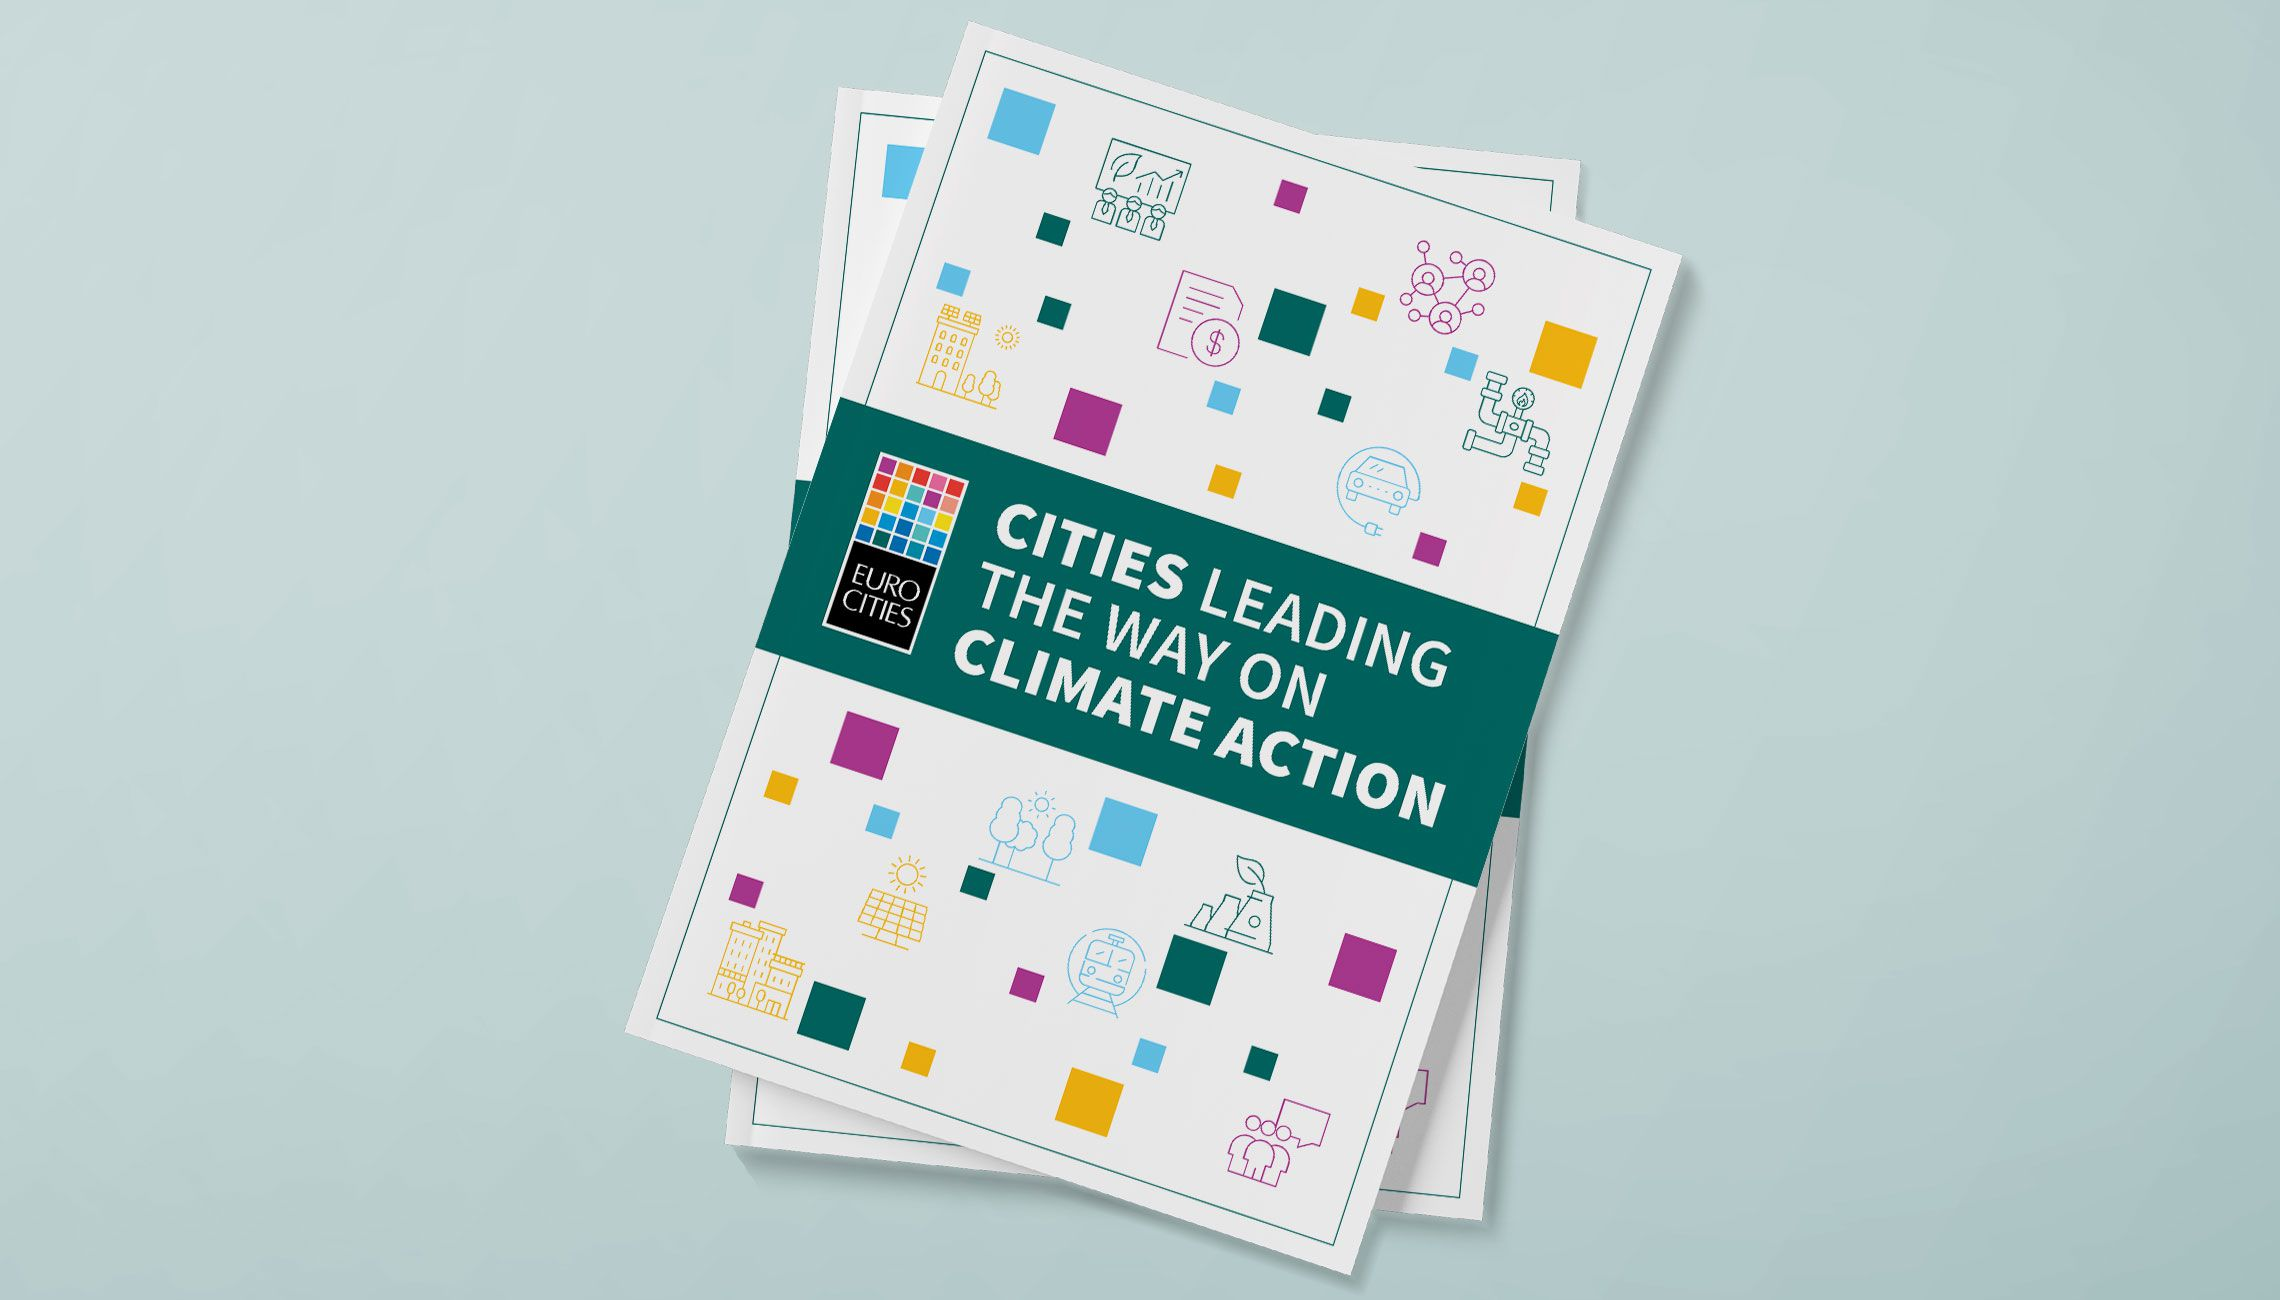 publication: Cities leading the way on climate action - image 1